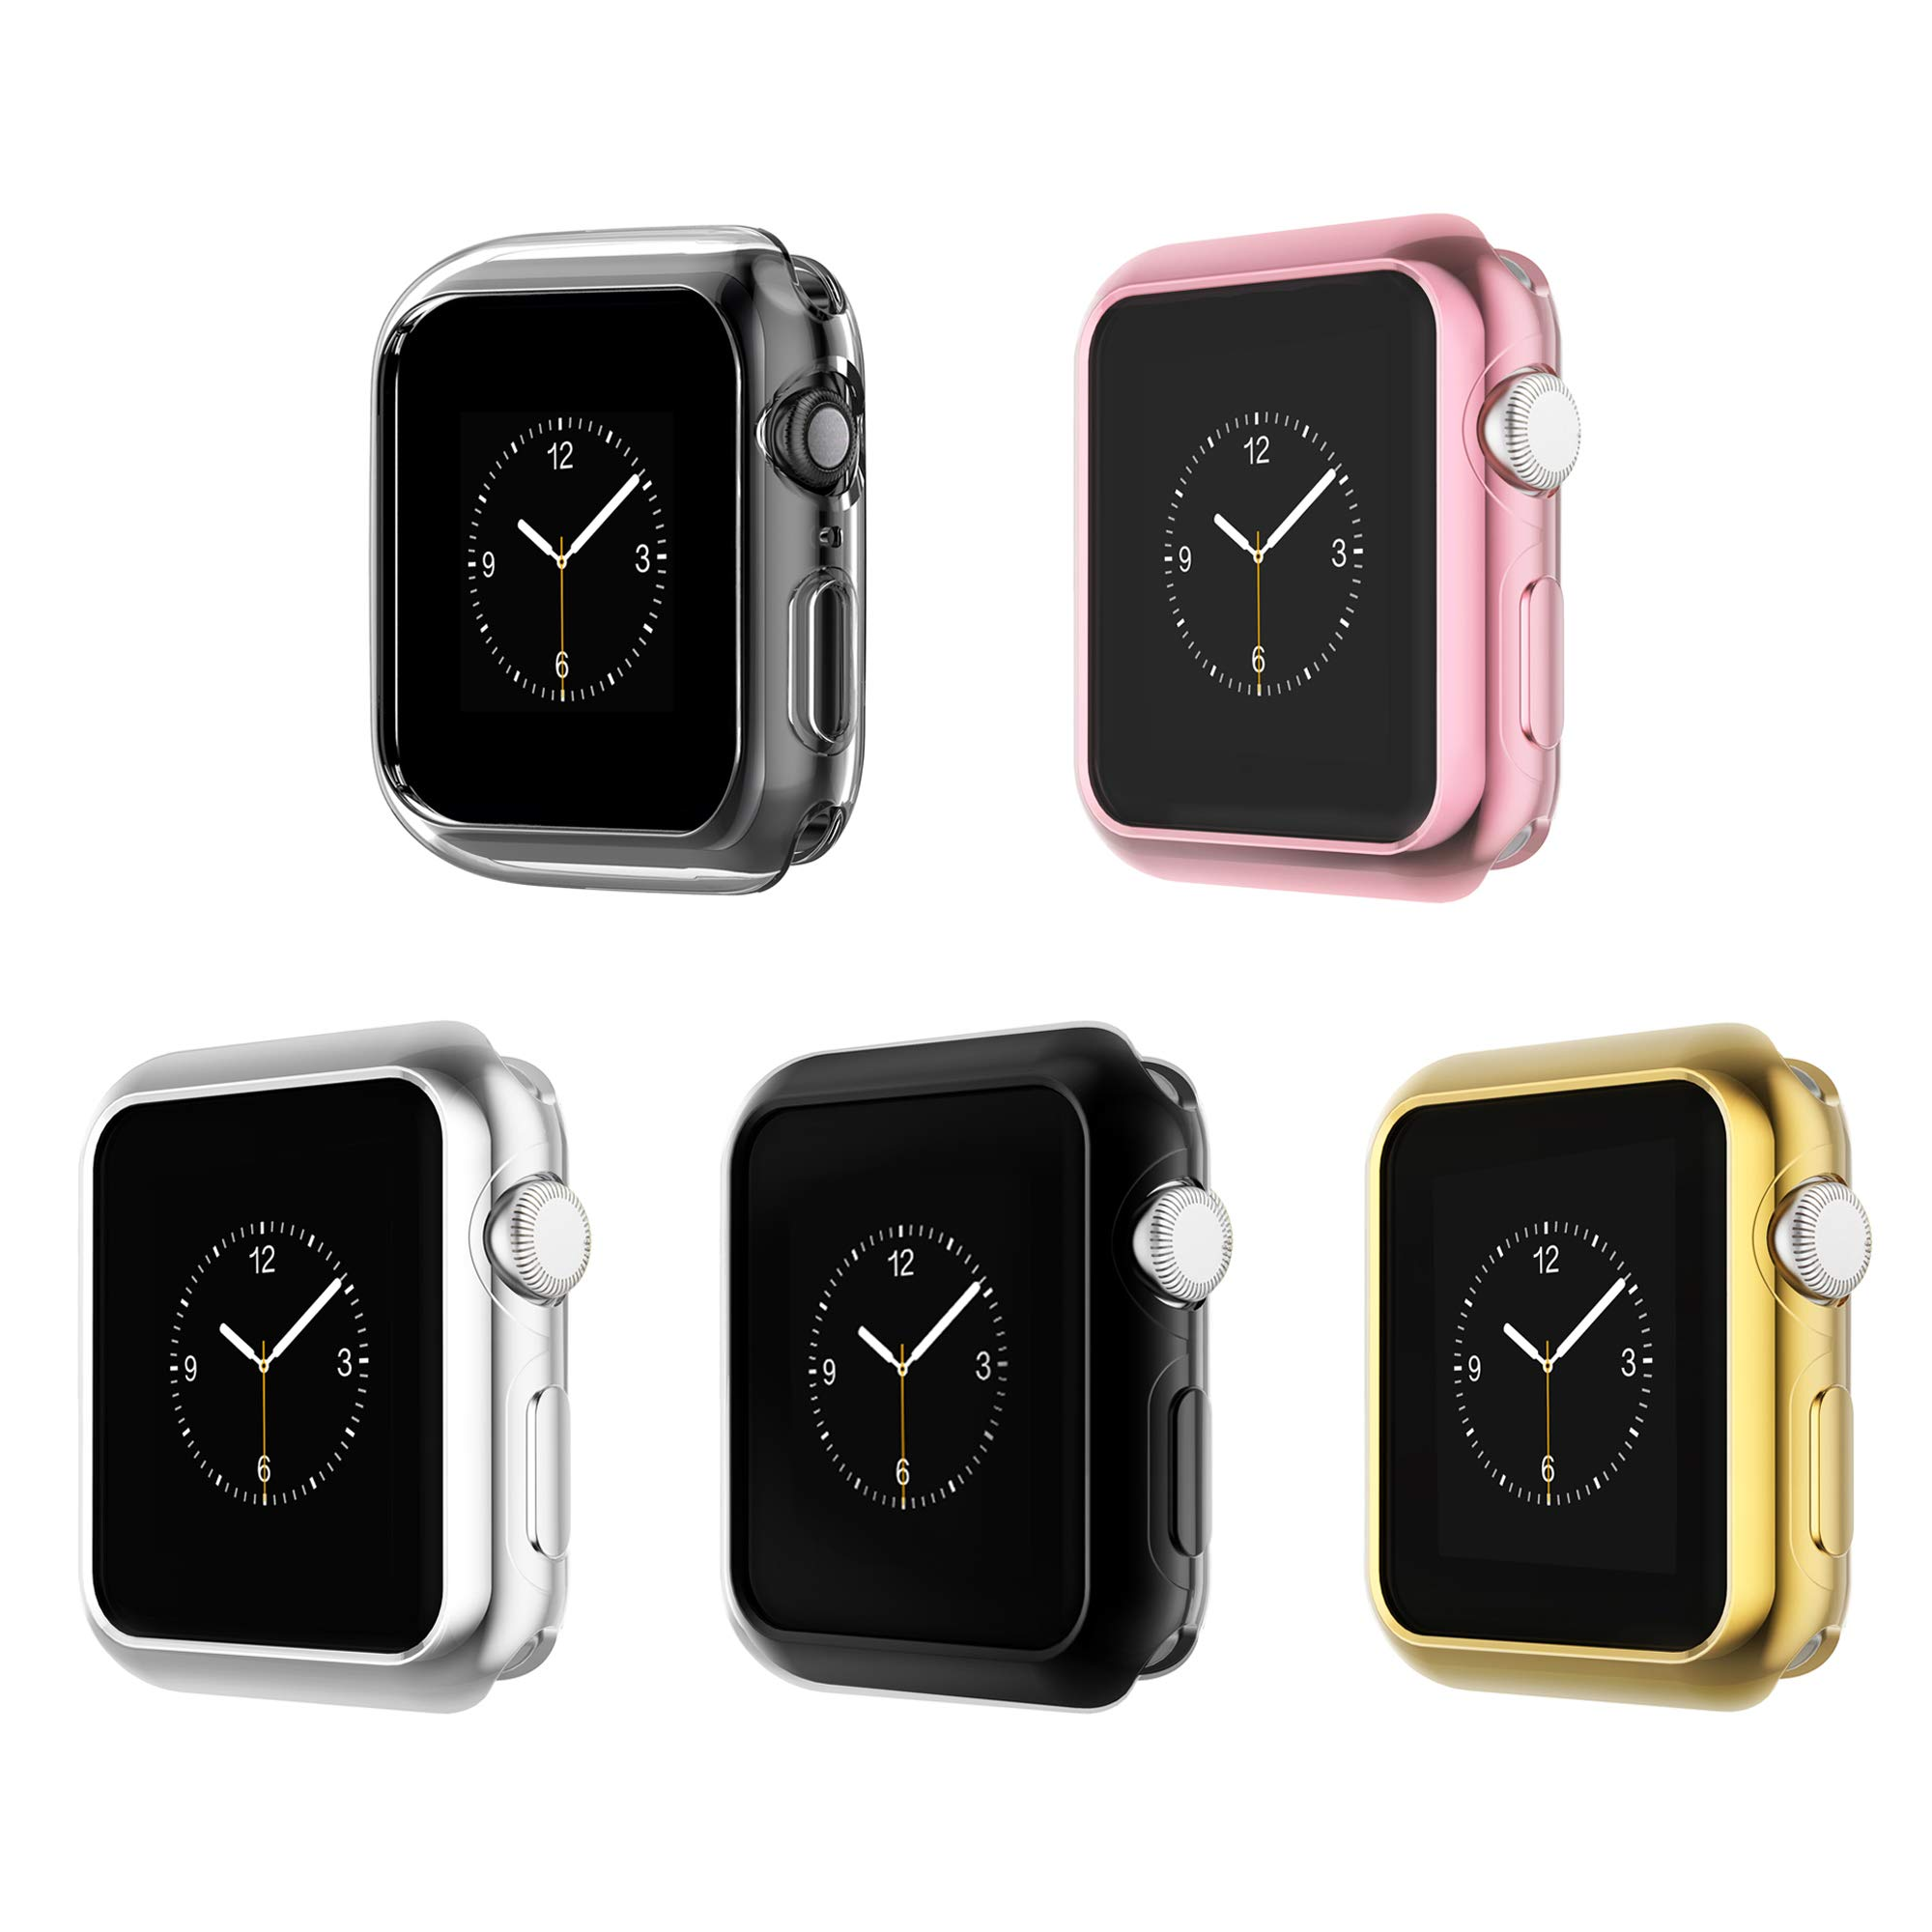 Leotop Compatible with Apple Watch Case 44mm 40mm, Soft Flexible TPU Plated Protector Bumper Shiny Cover Lightweight Thin Guard Shockproof Frame Compatible for iWatch Series 4 (V2-5 Color Pack, 44mm) by Leotop